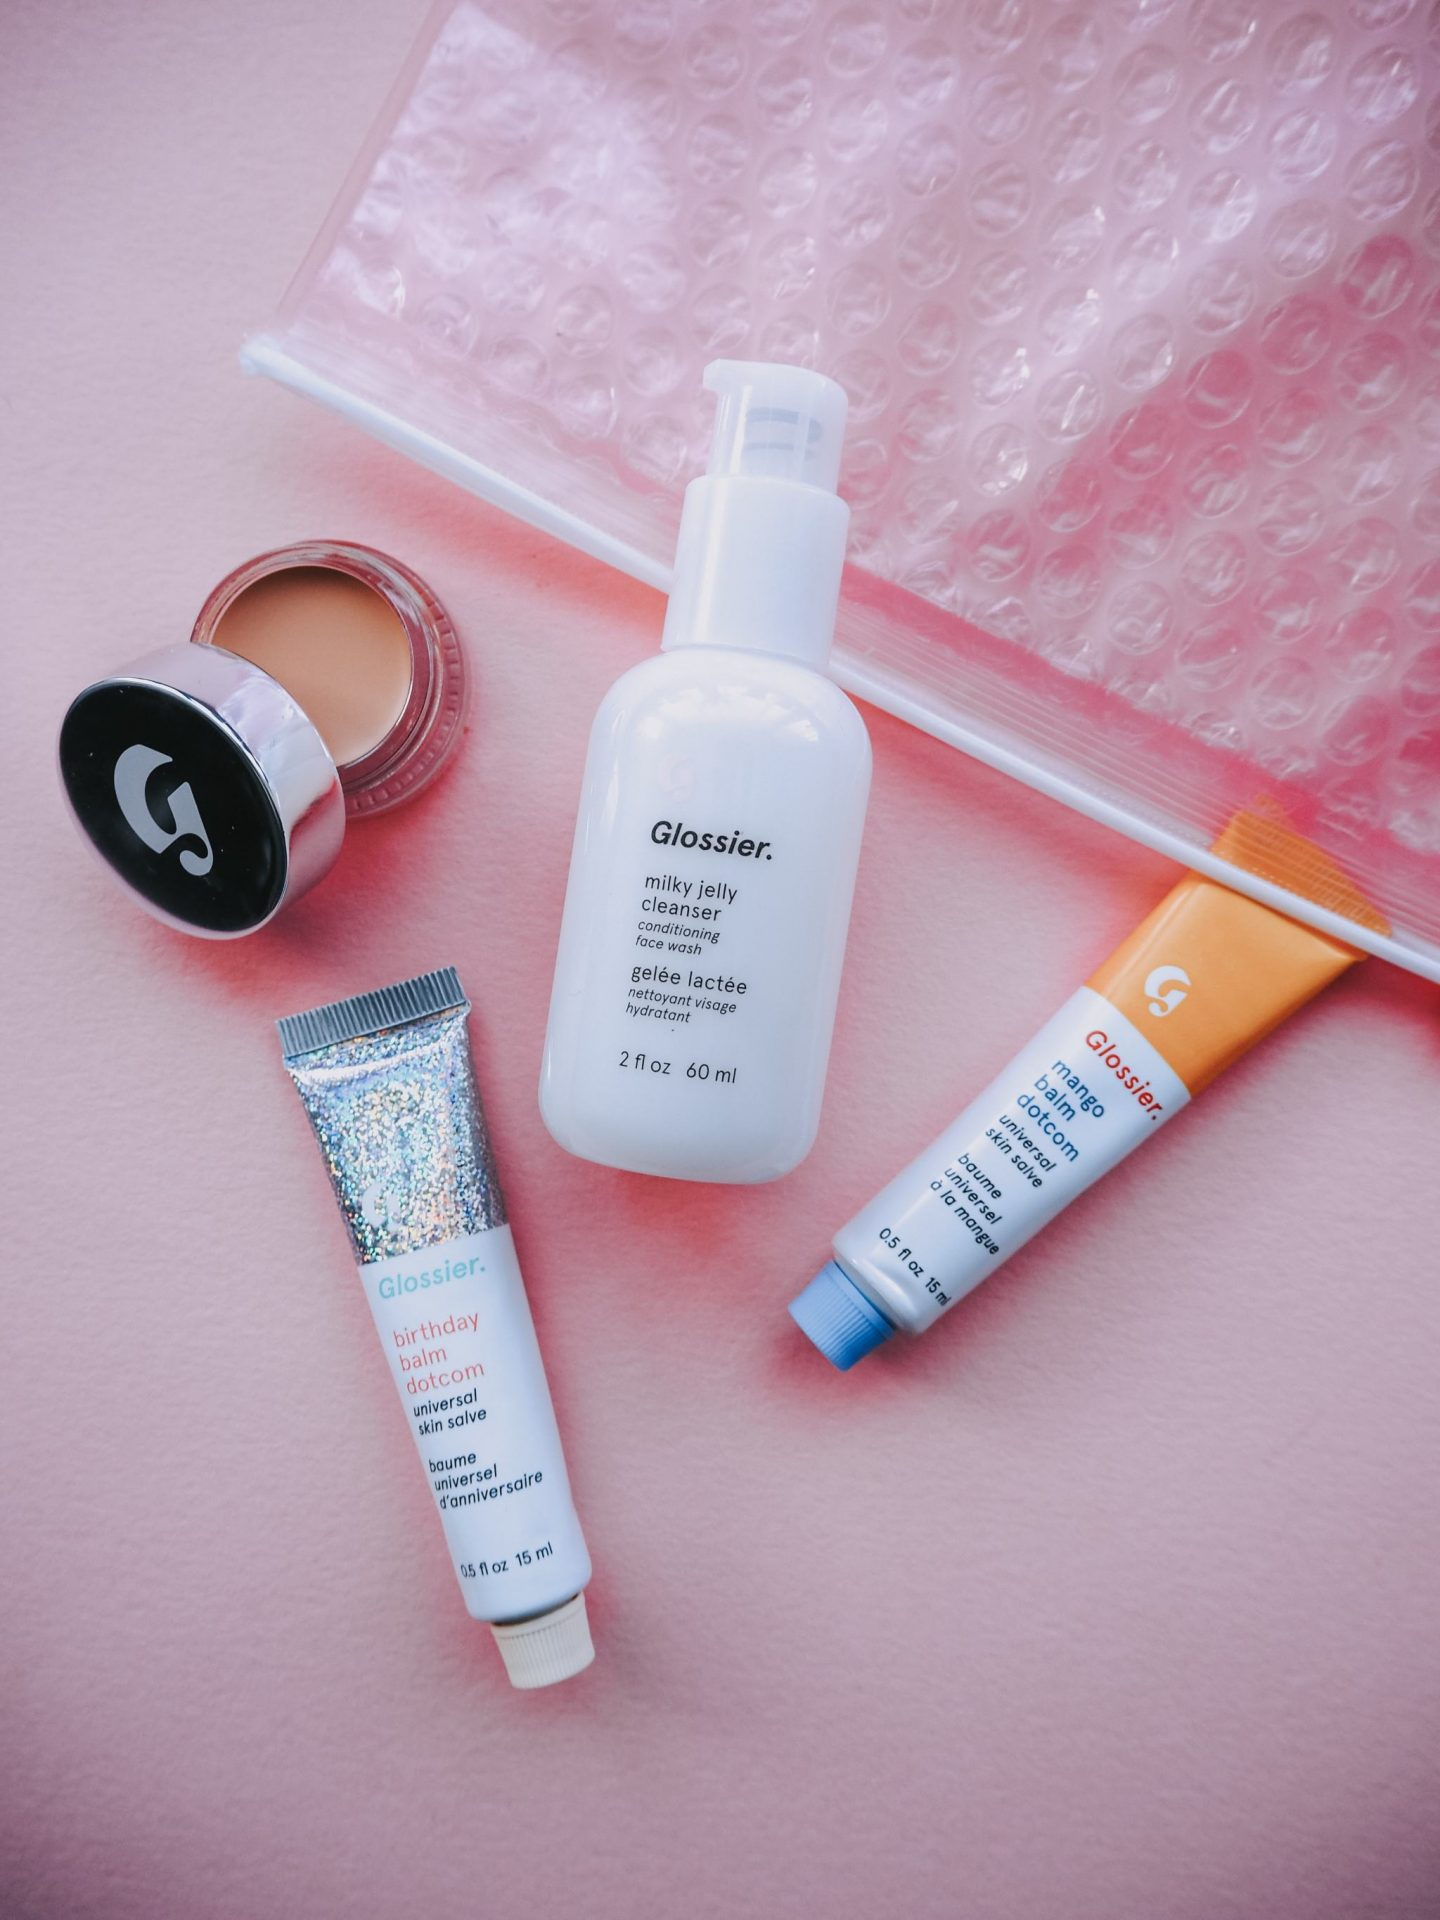 glossier first impressions - glossier milk jelly cleanser, glossier stretch concealer, glossier balm Dotcom